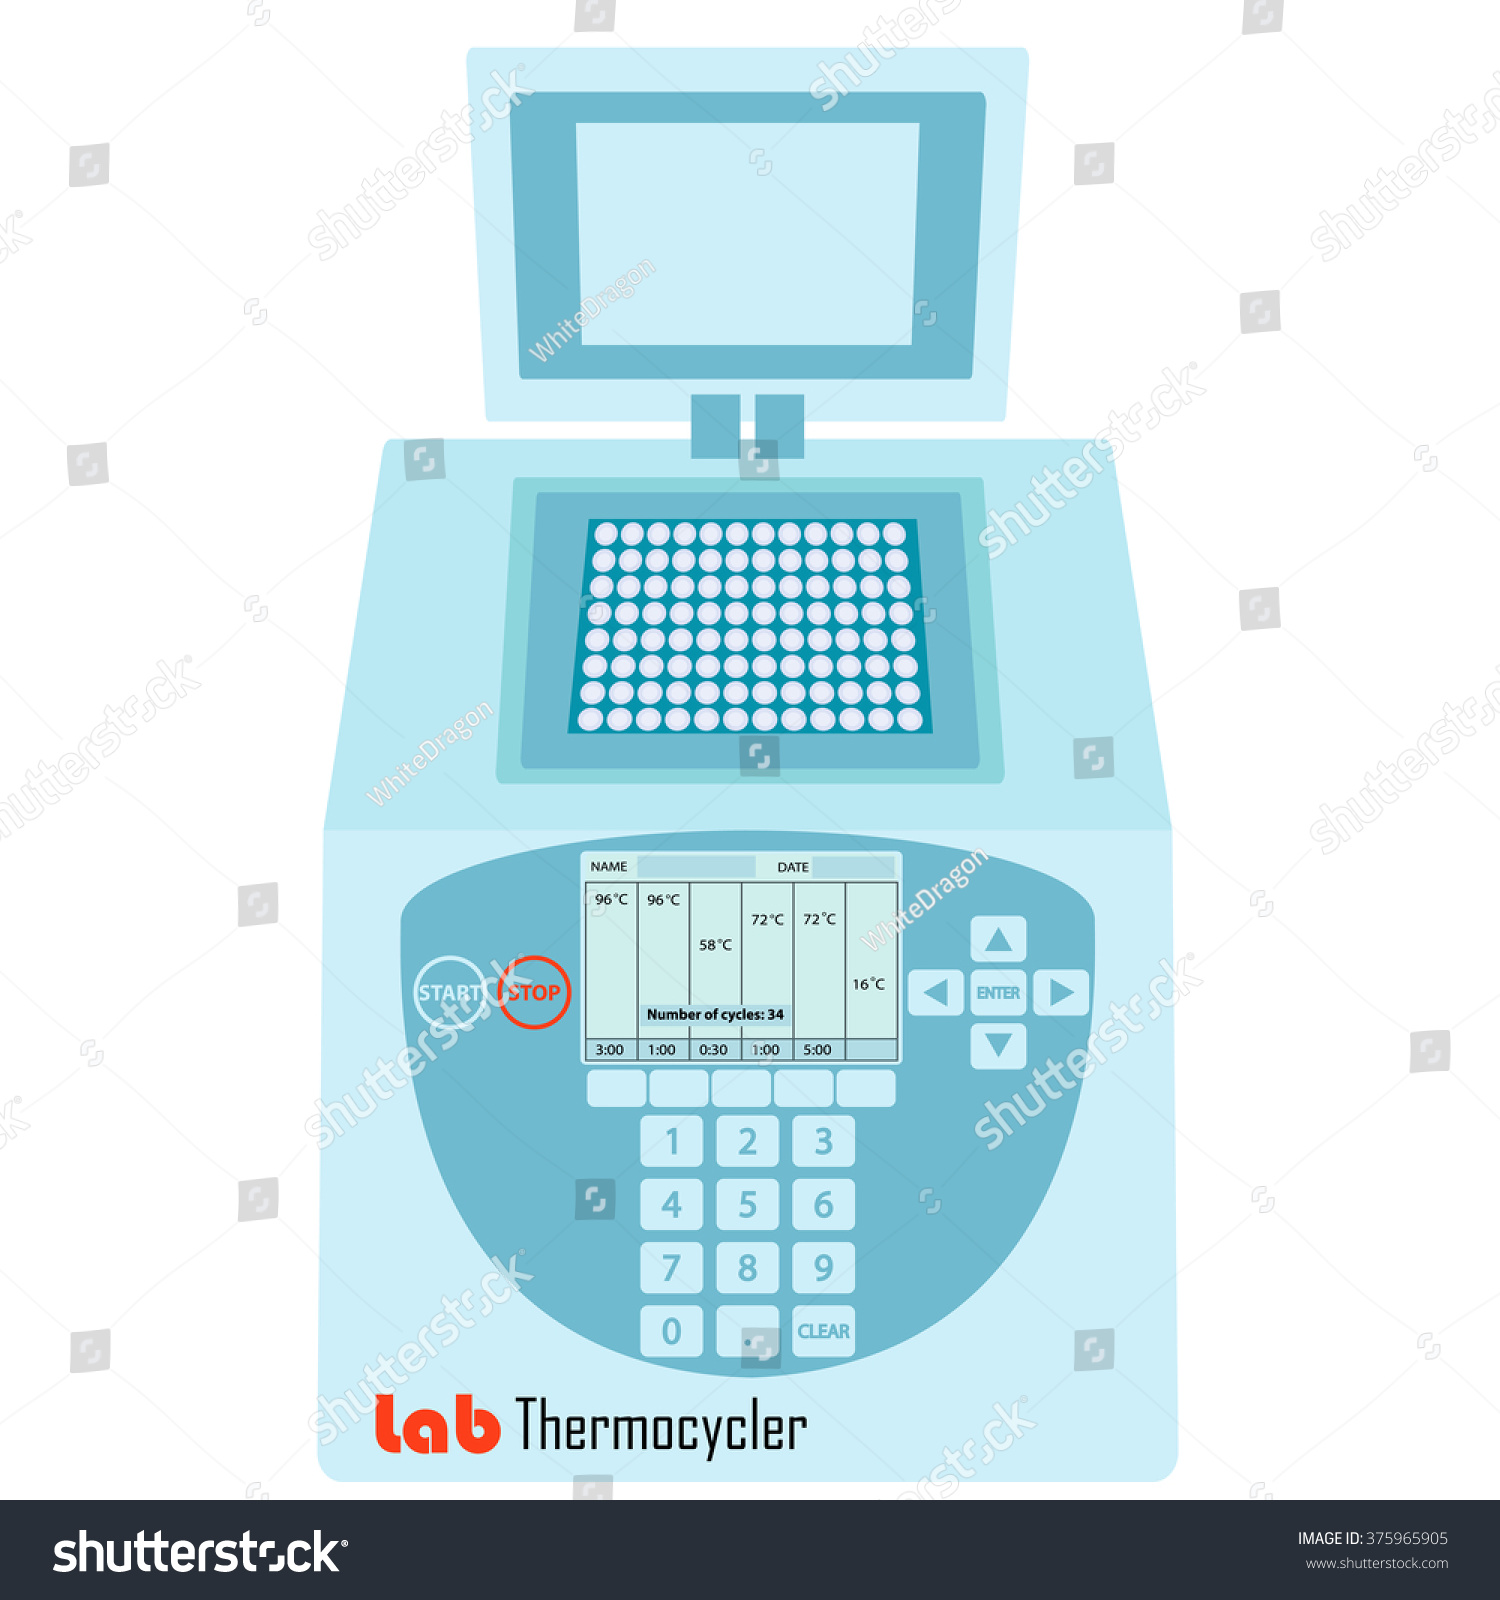 Worksheets Equipment Used In Biology Laboratory thermal cycler laboratory apparatus polymerase chain stock photo for reaction lab equipment molecular biology research